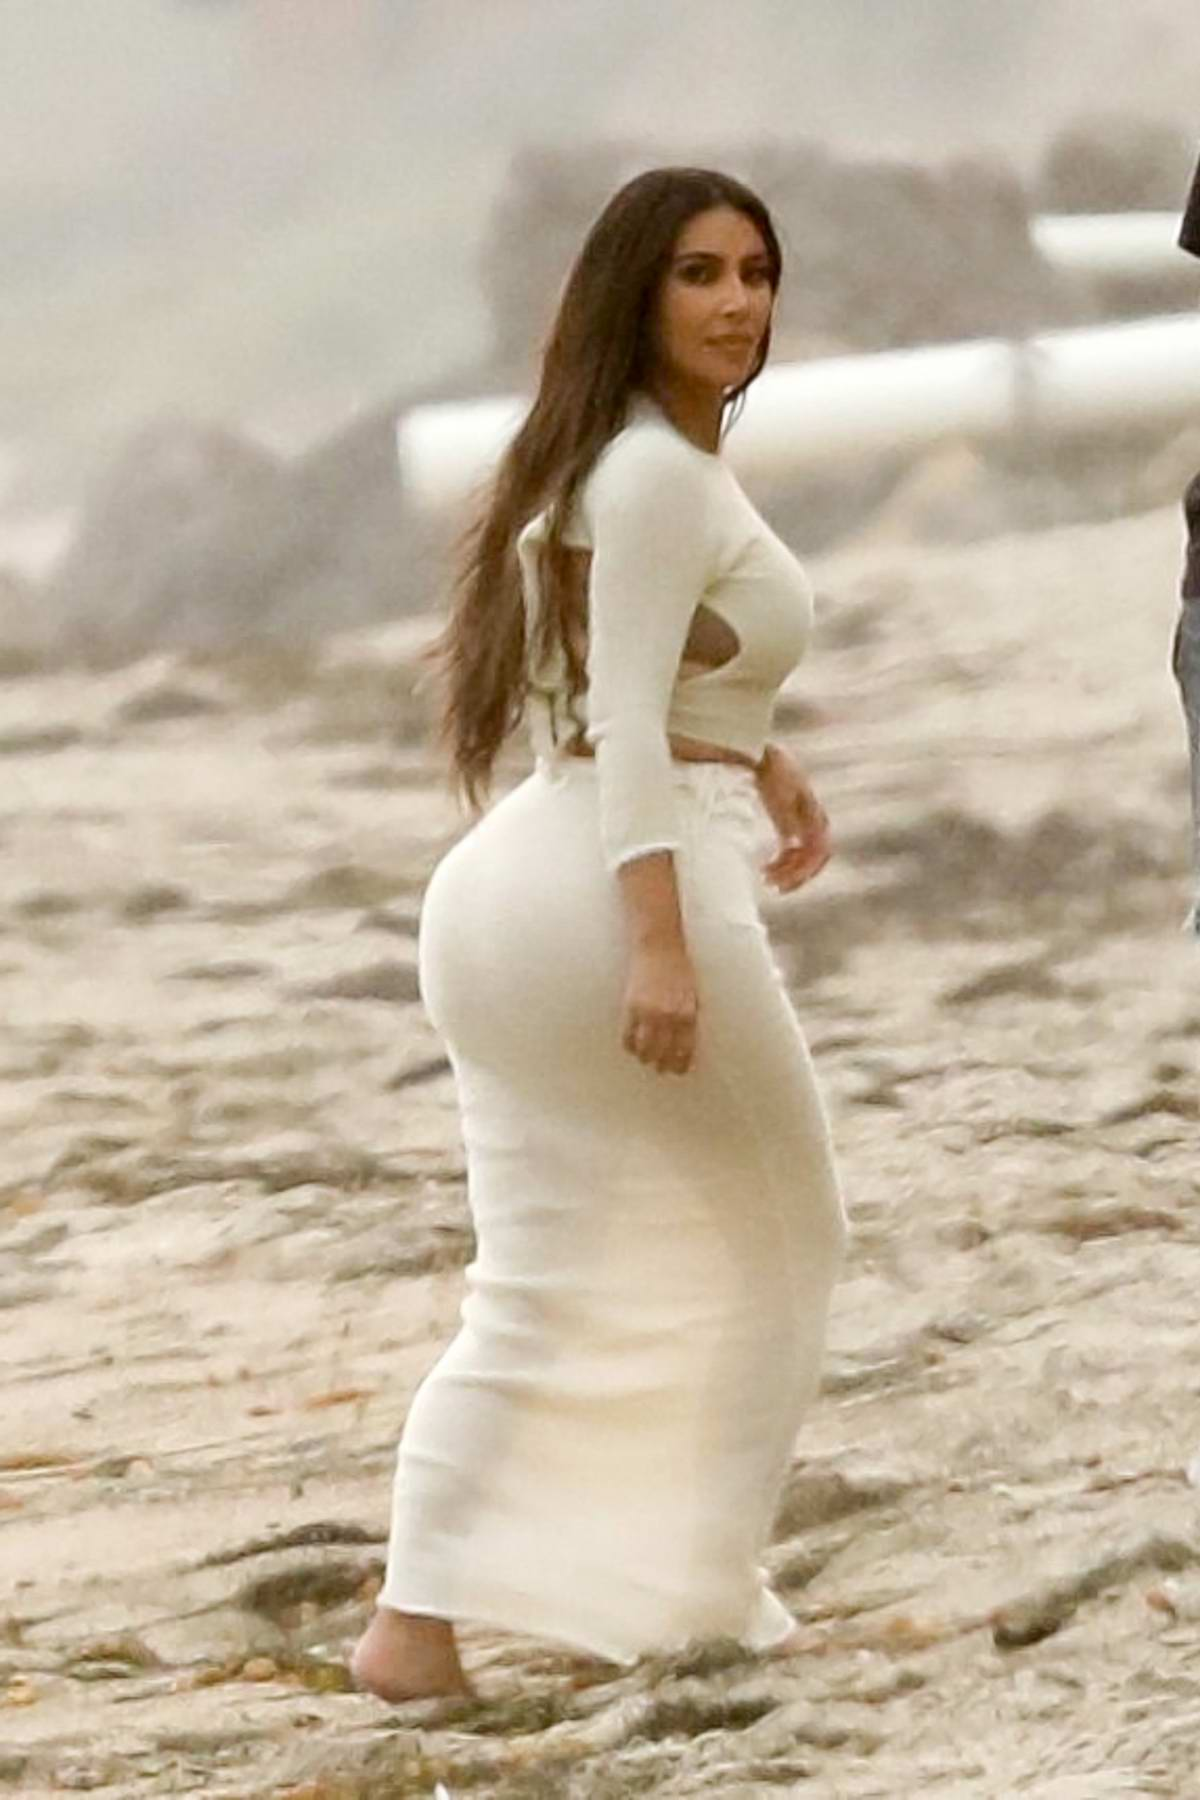 Kim Kardashian, Khloé Kardashian and Scott Disick seen filming for KUWTK on the beach in Malibu, California